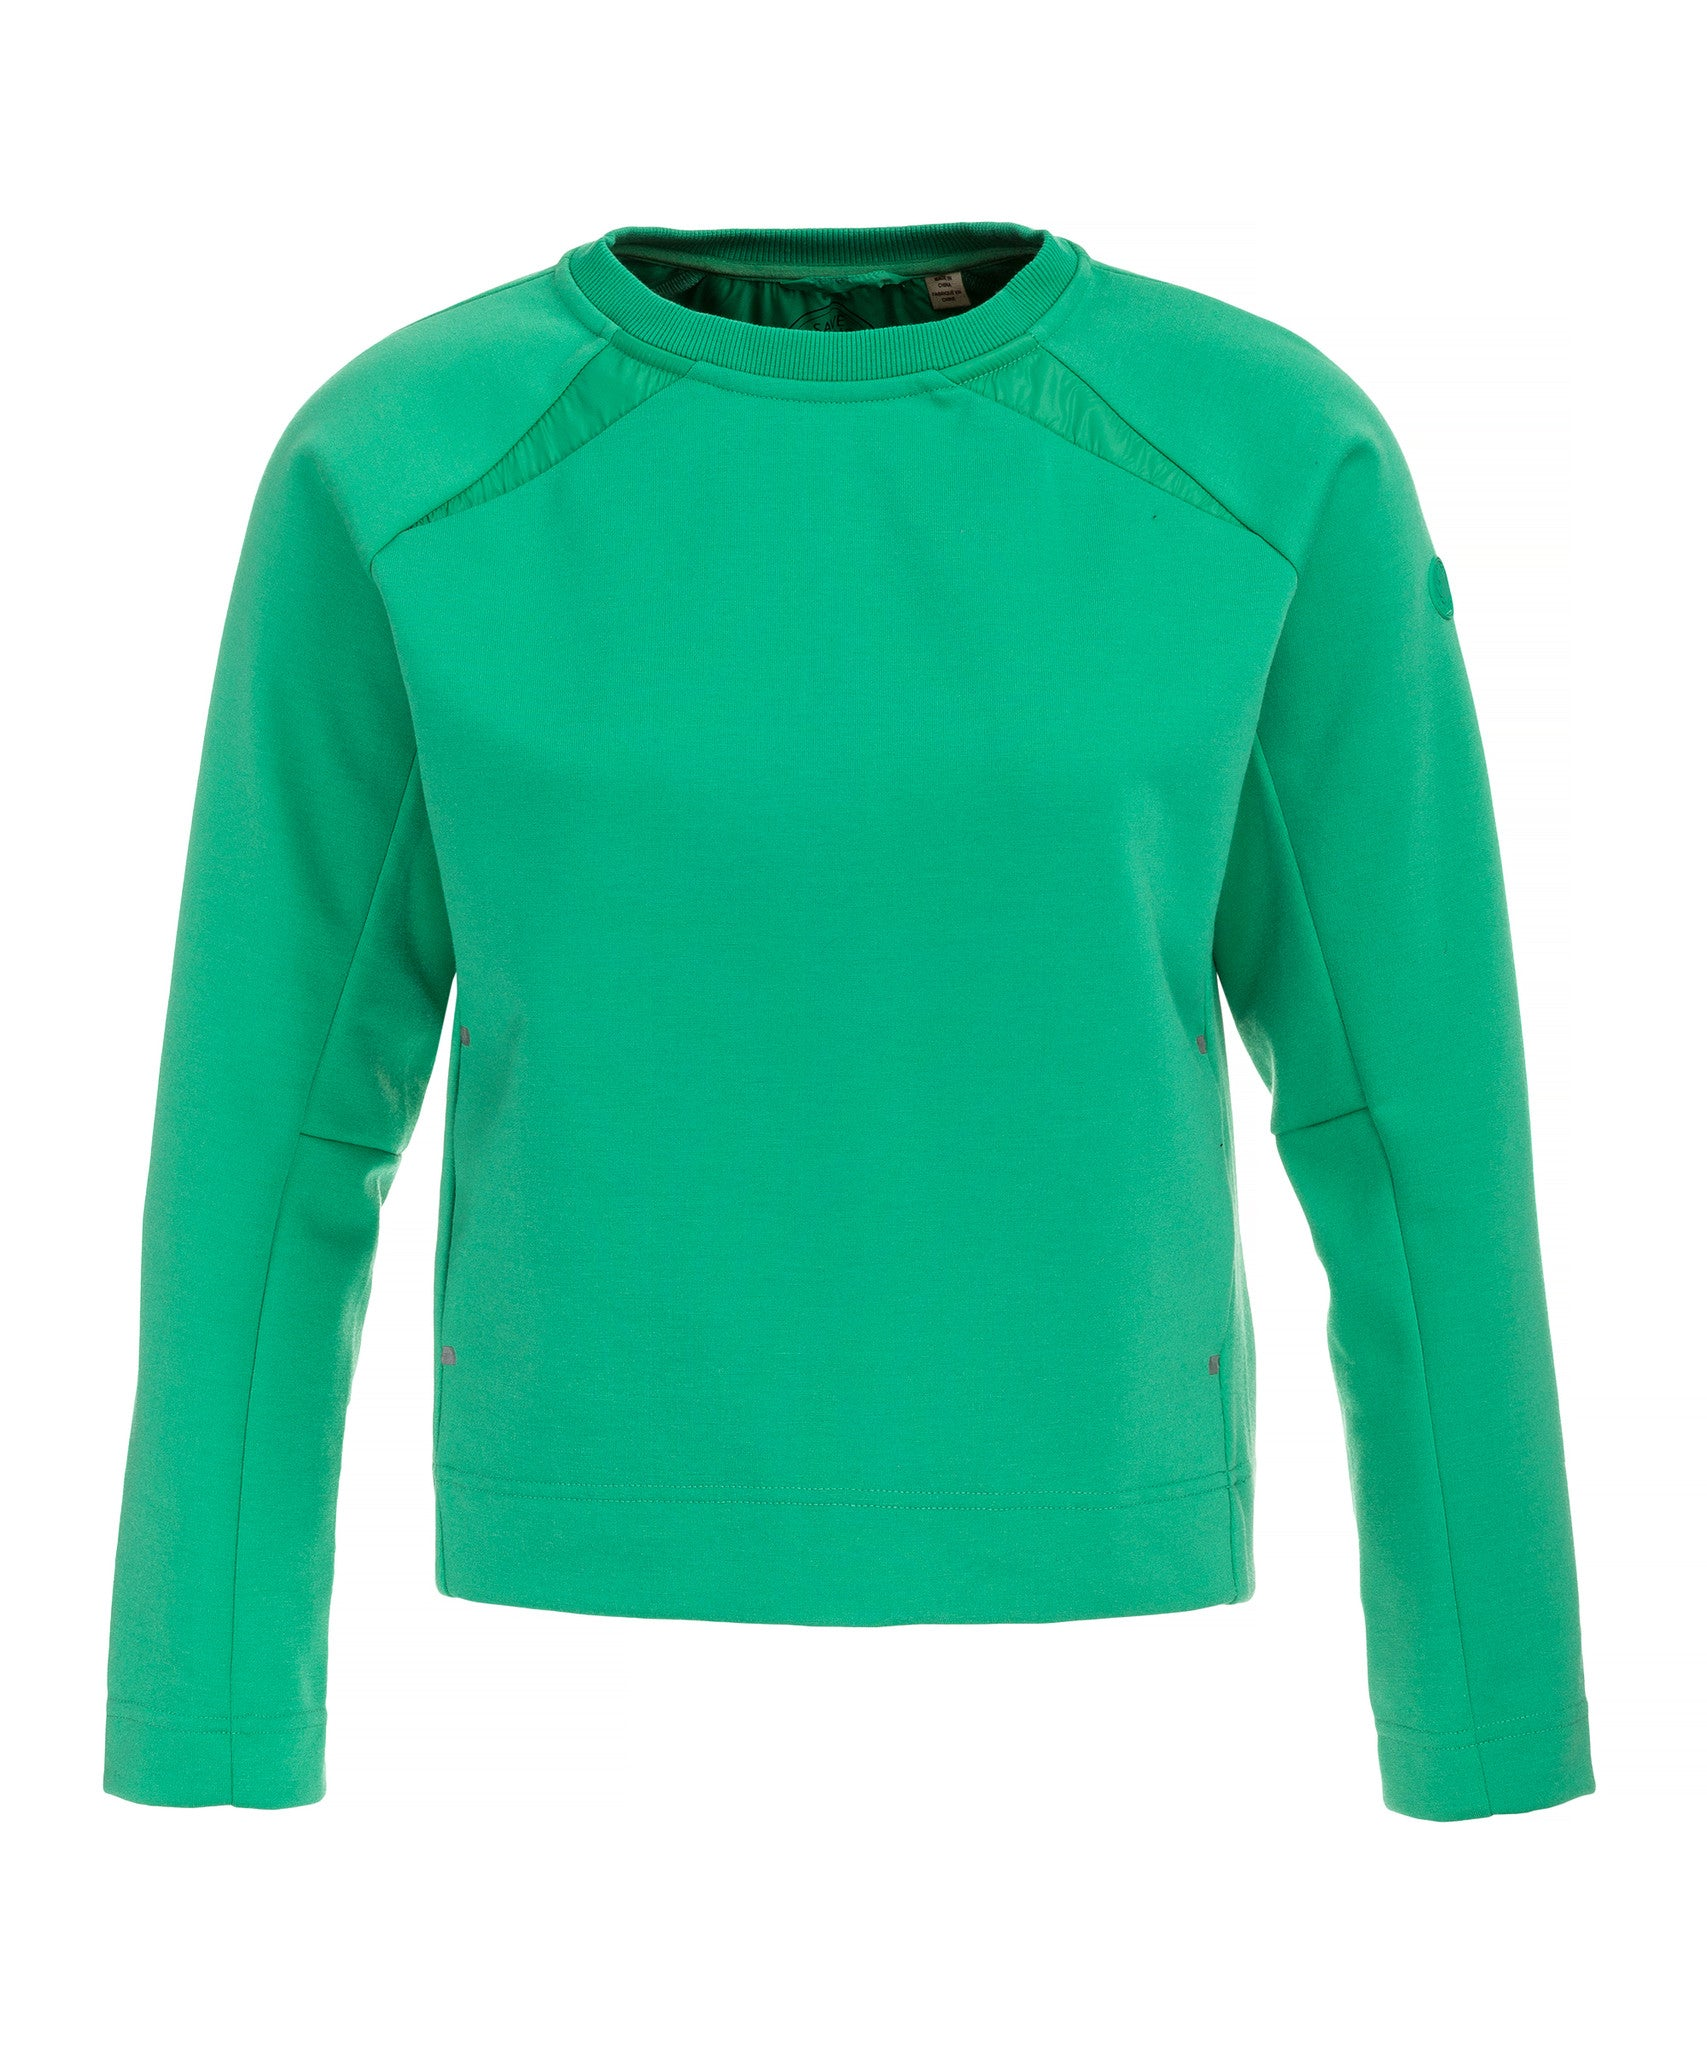 207fc676 Save The Duck Women's Sweatshirt in Bright Green - Save the Duck